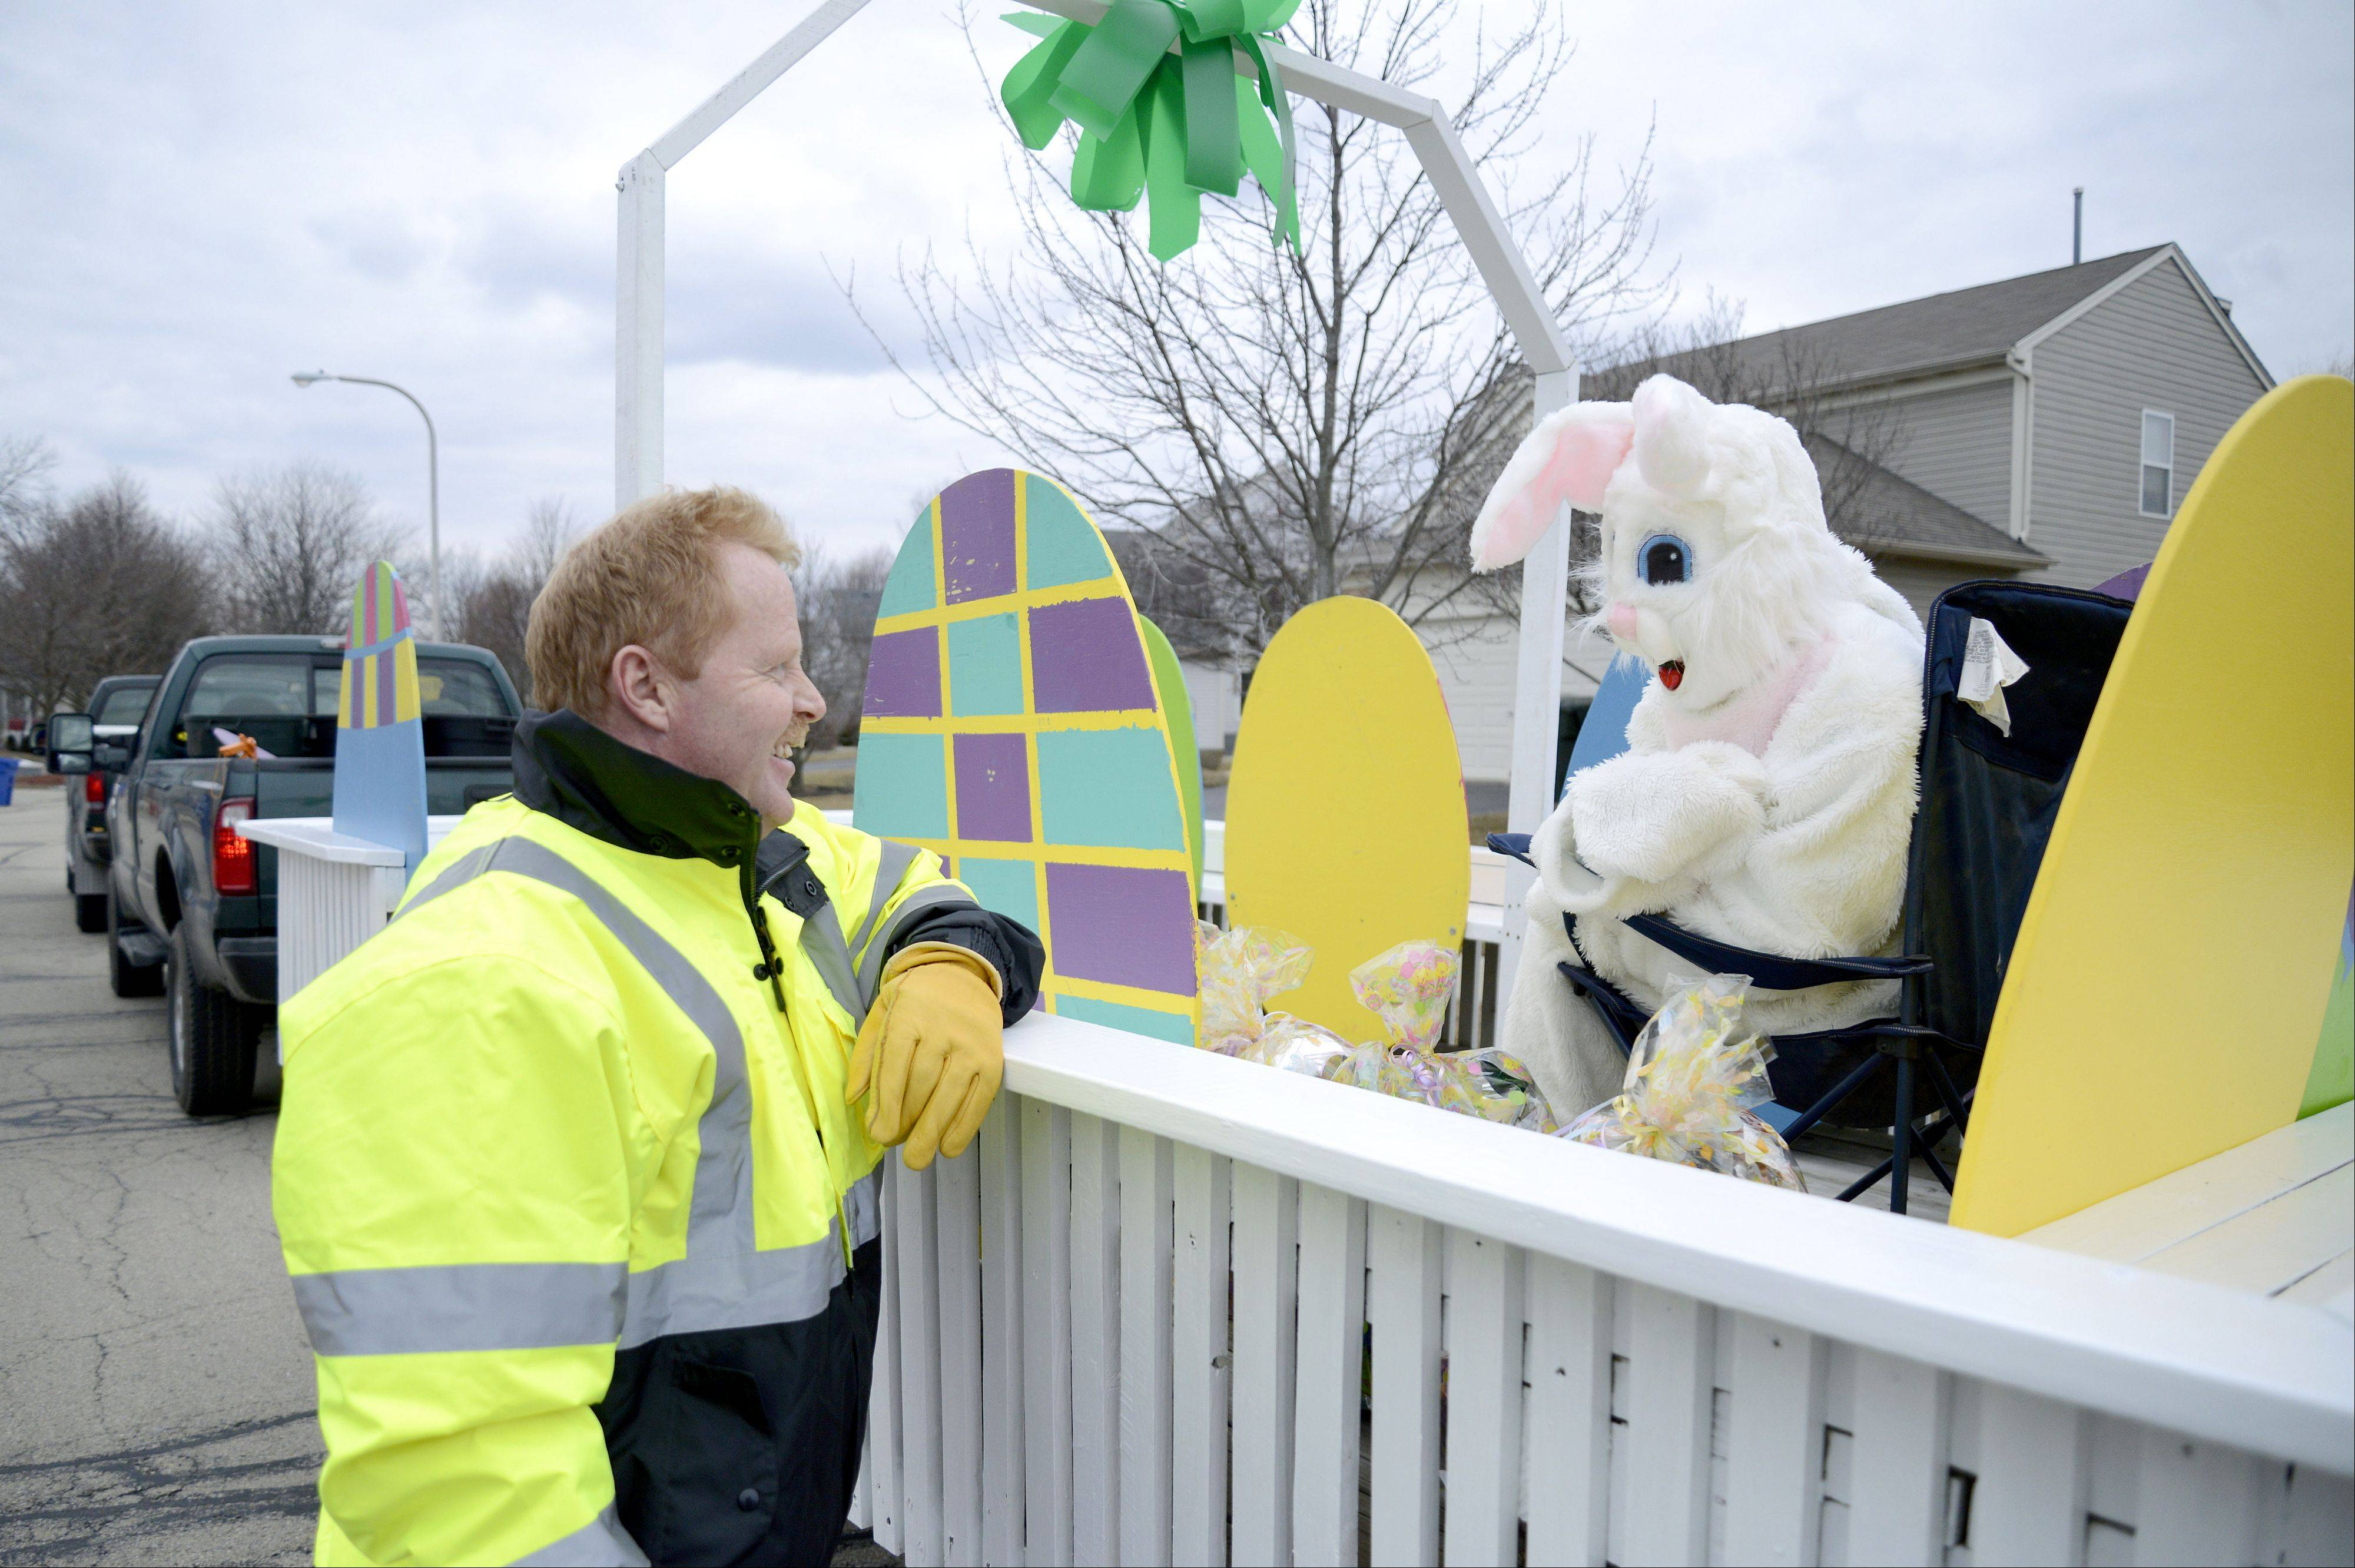 Tyree chats with the Easter Bunny (aka Tessa Eggebrecht of South Elgin) before their next Easter basket delivery. This is Tyree's favorite event his department produces, and he gets a kick out of the children's reactions.